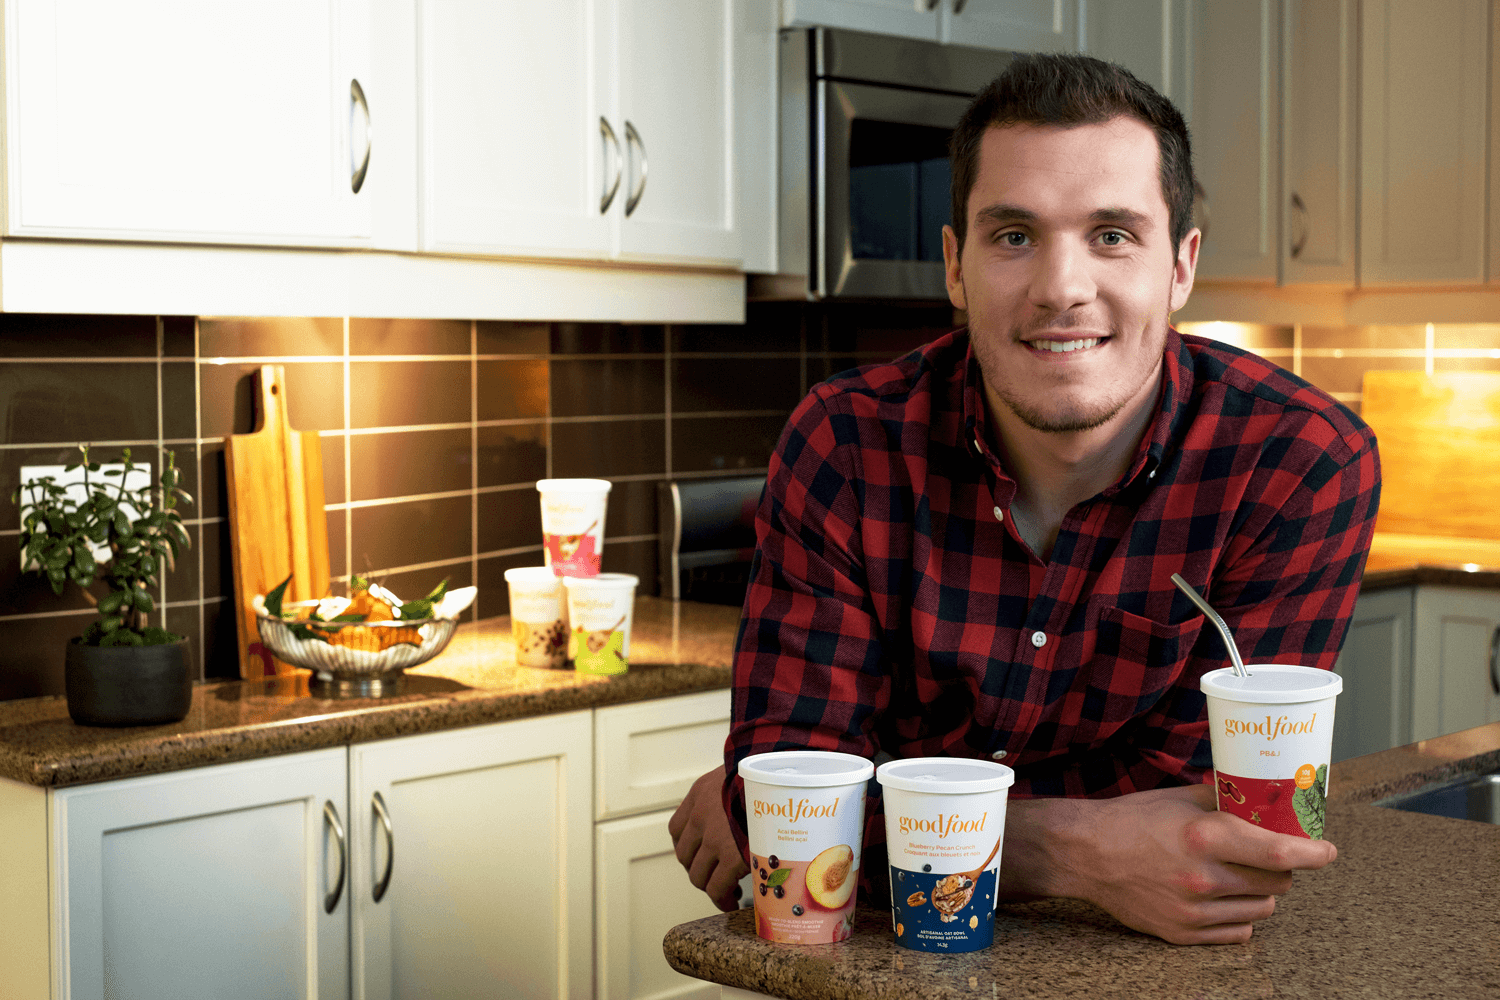 Bo Horvat with Goodfood smoothies